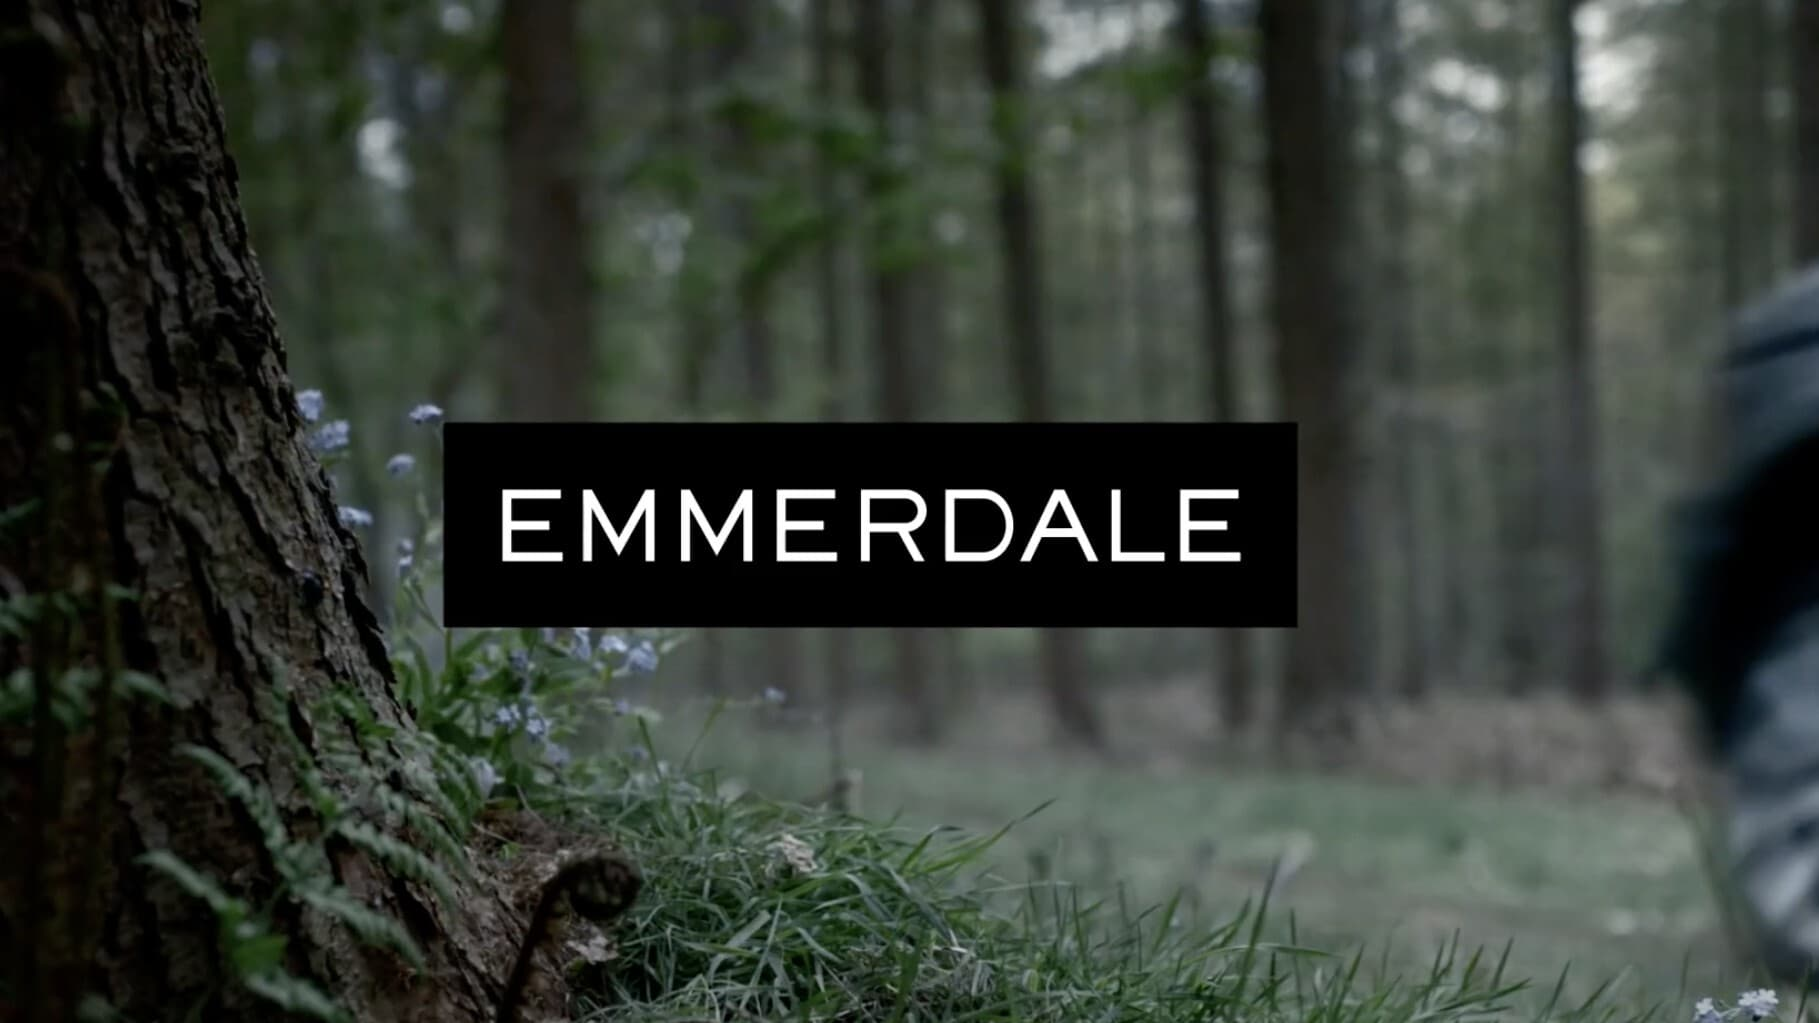 Emmerdale - Season 46 Episode 289 : Thursday 21st November 2019 (Part 1)